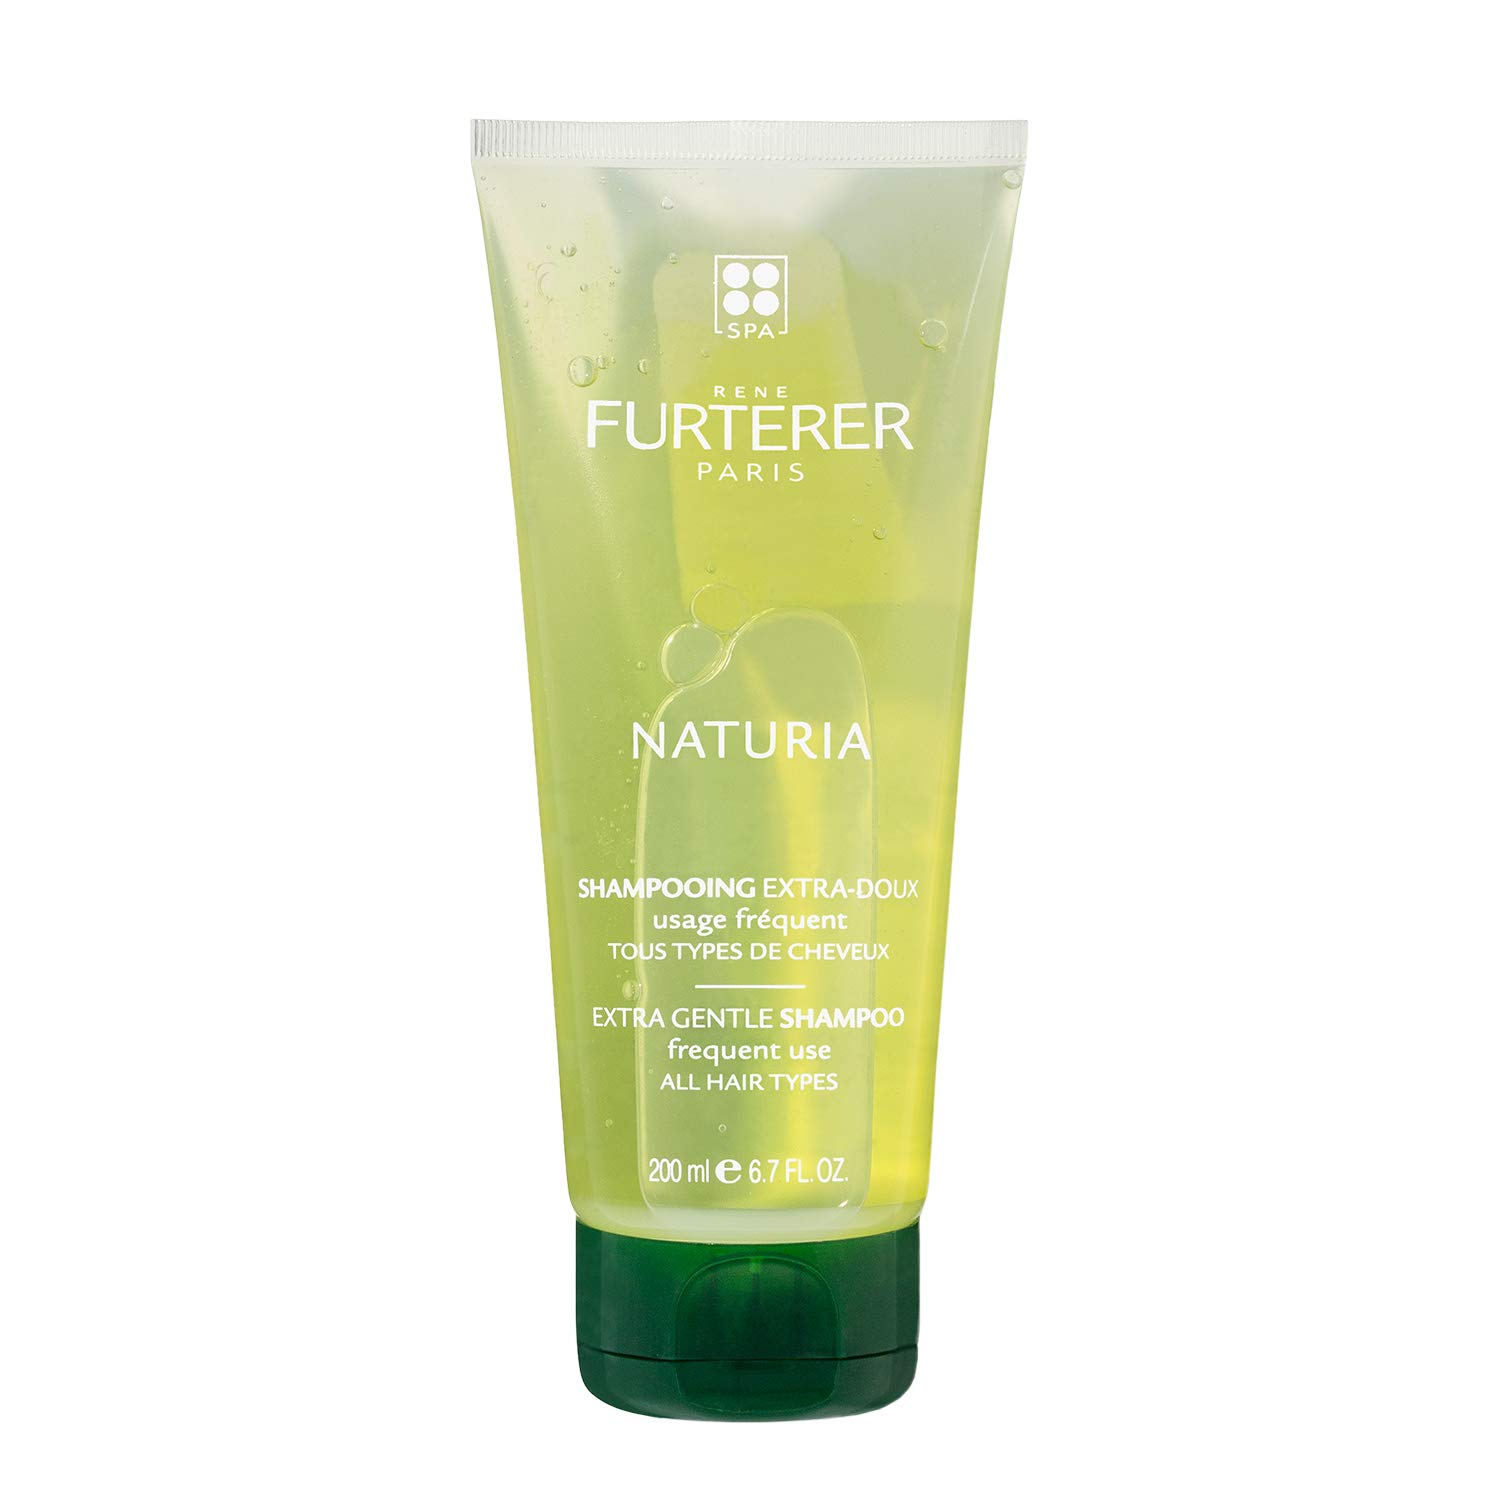 Rene Furterer NATURIA Extra Gentle Shampoo, Daily Use, Peppermint & Basil Oil, All Hair Types